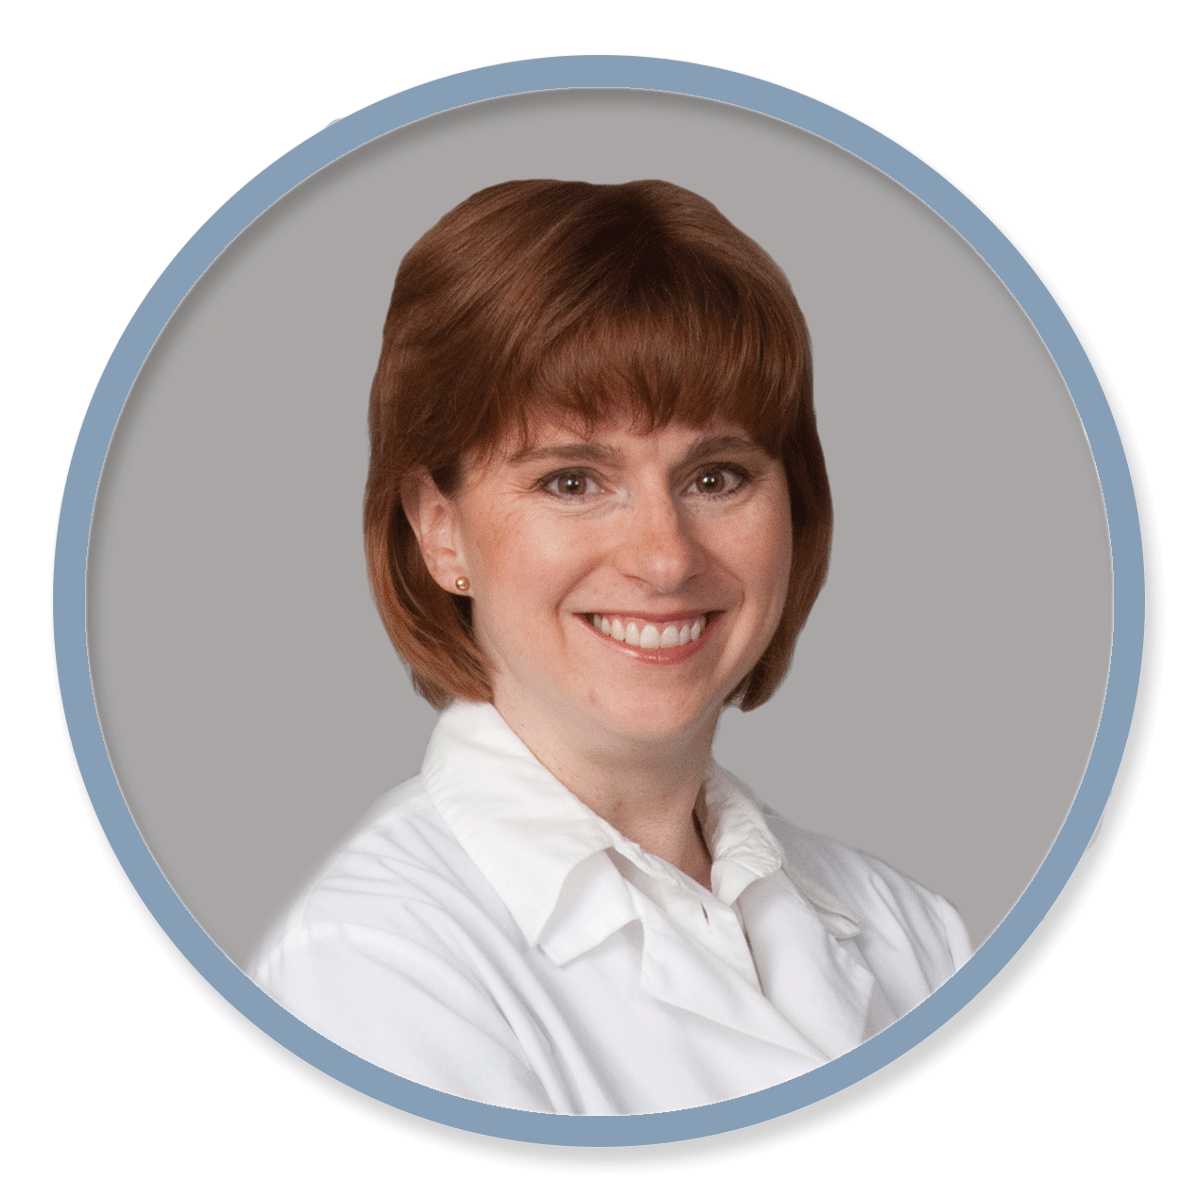 An image of provider Shelley Bailey, MD | Family Medicine